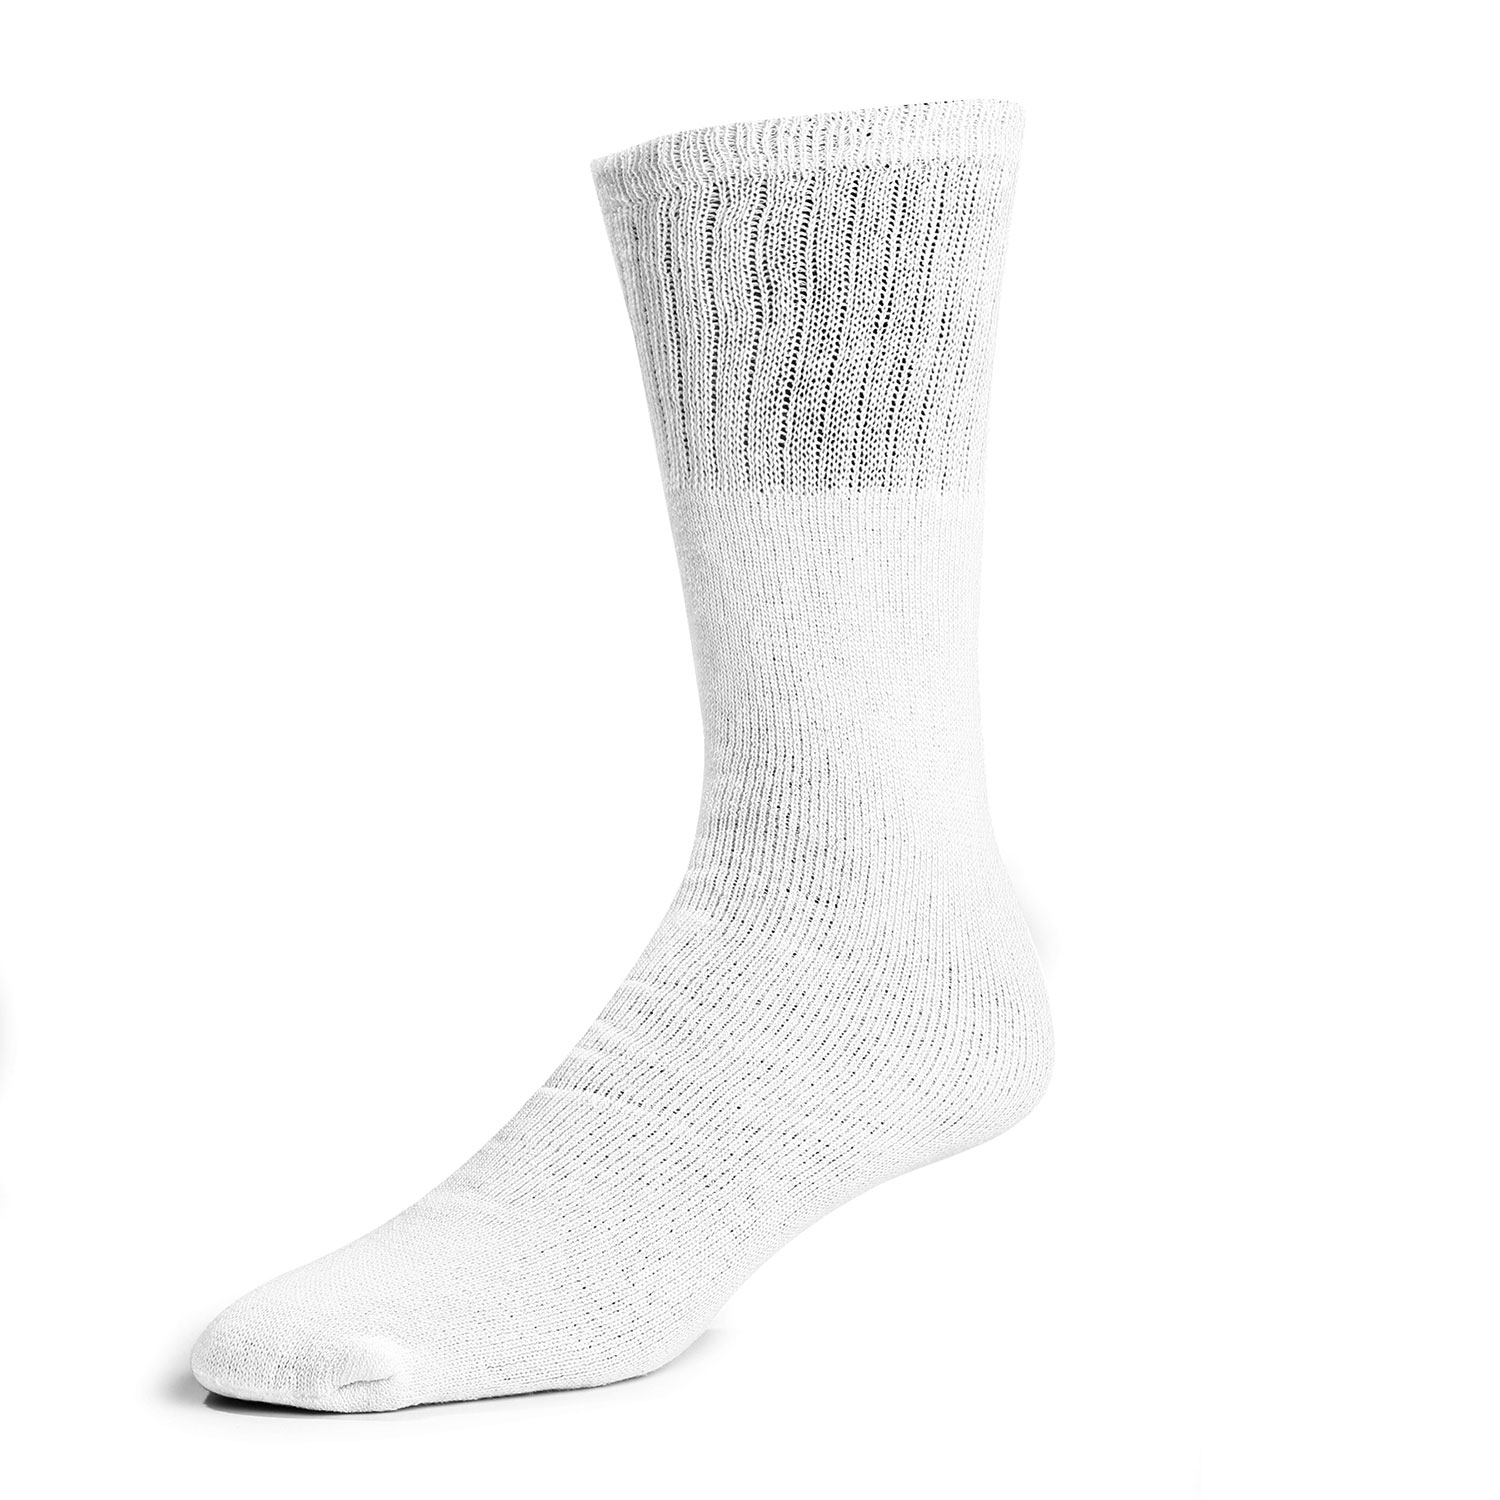 Taylor Leatherwear TUBE SOCK 12PK